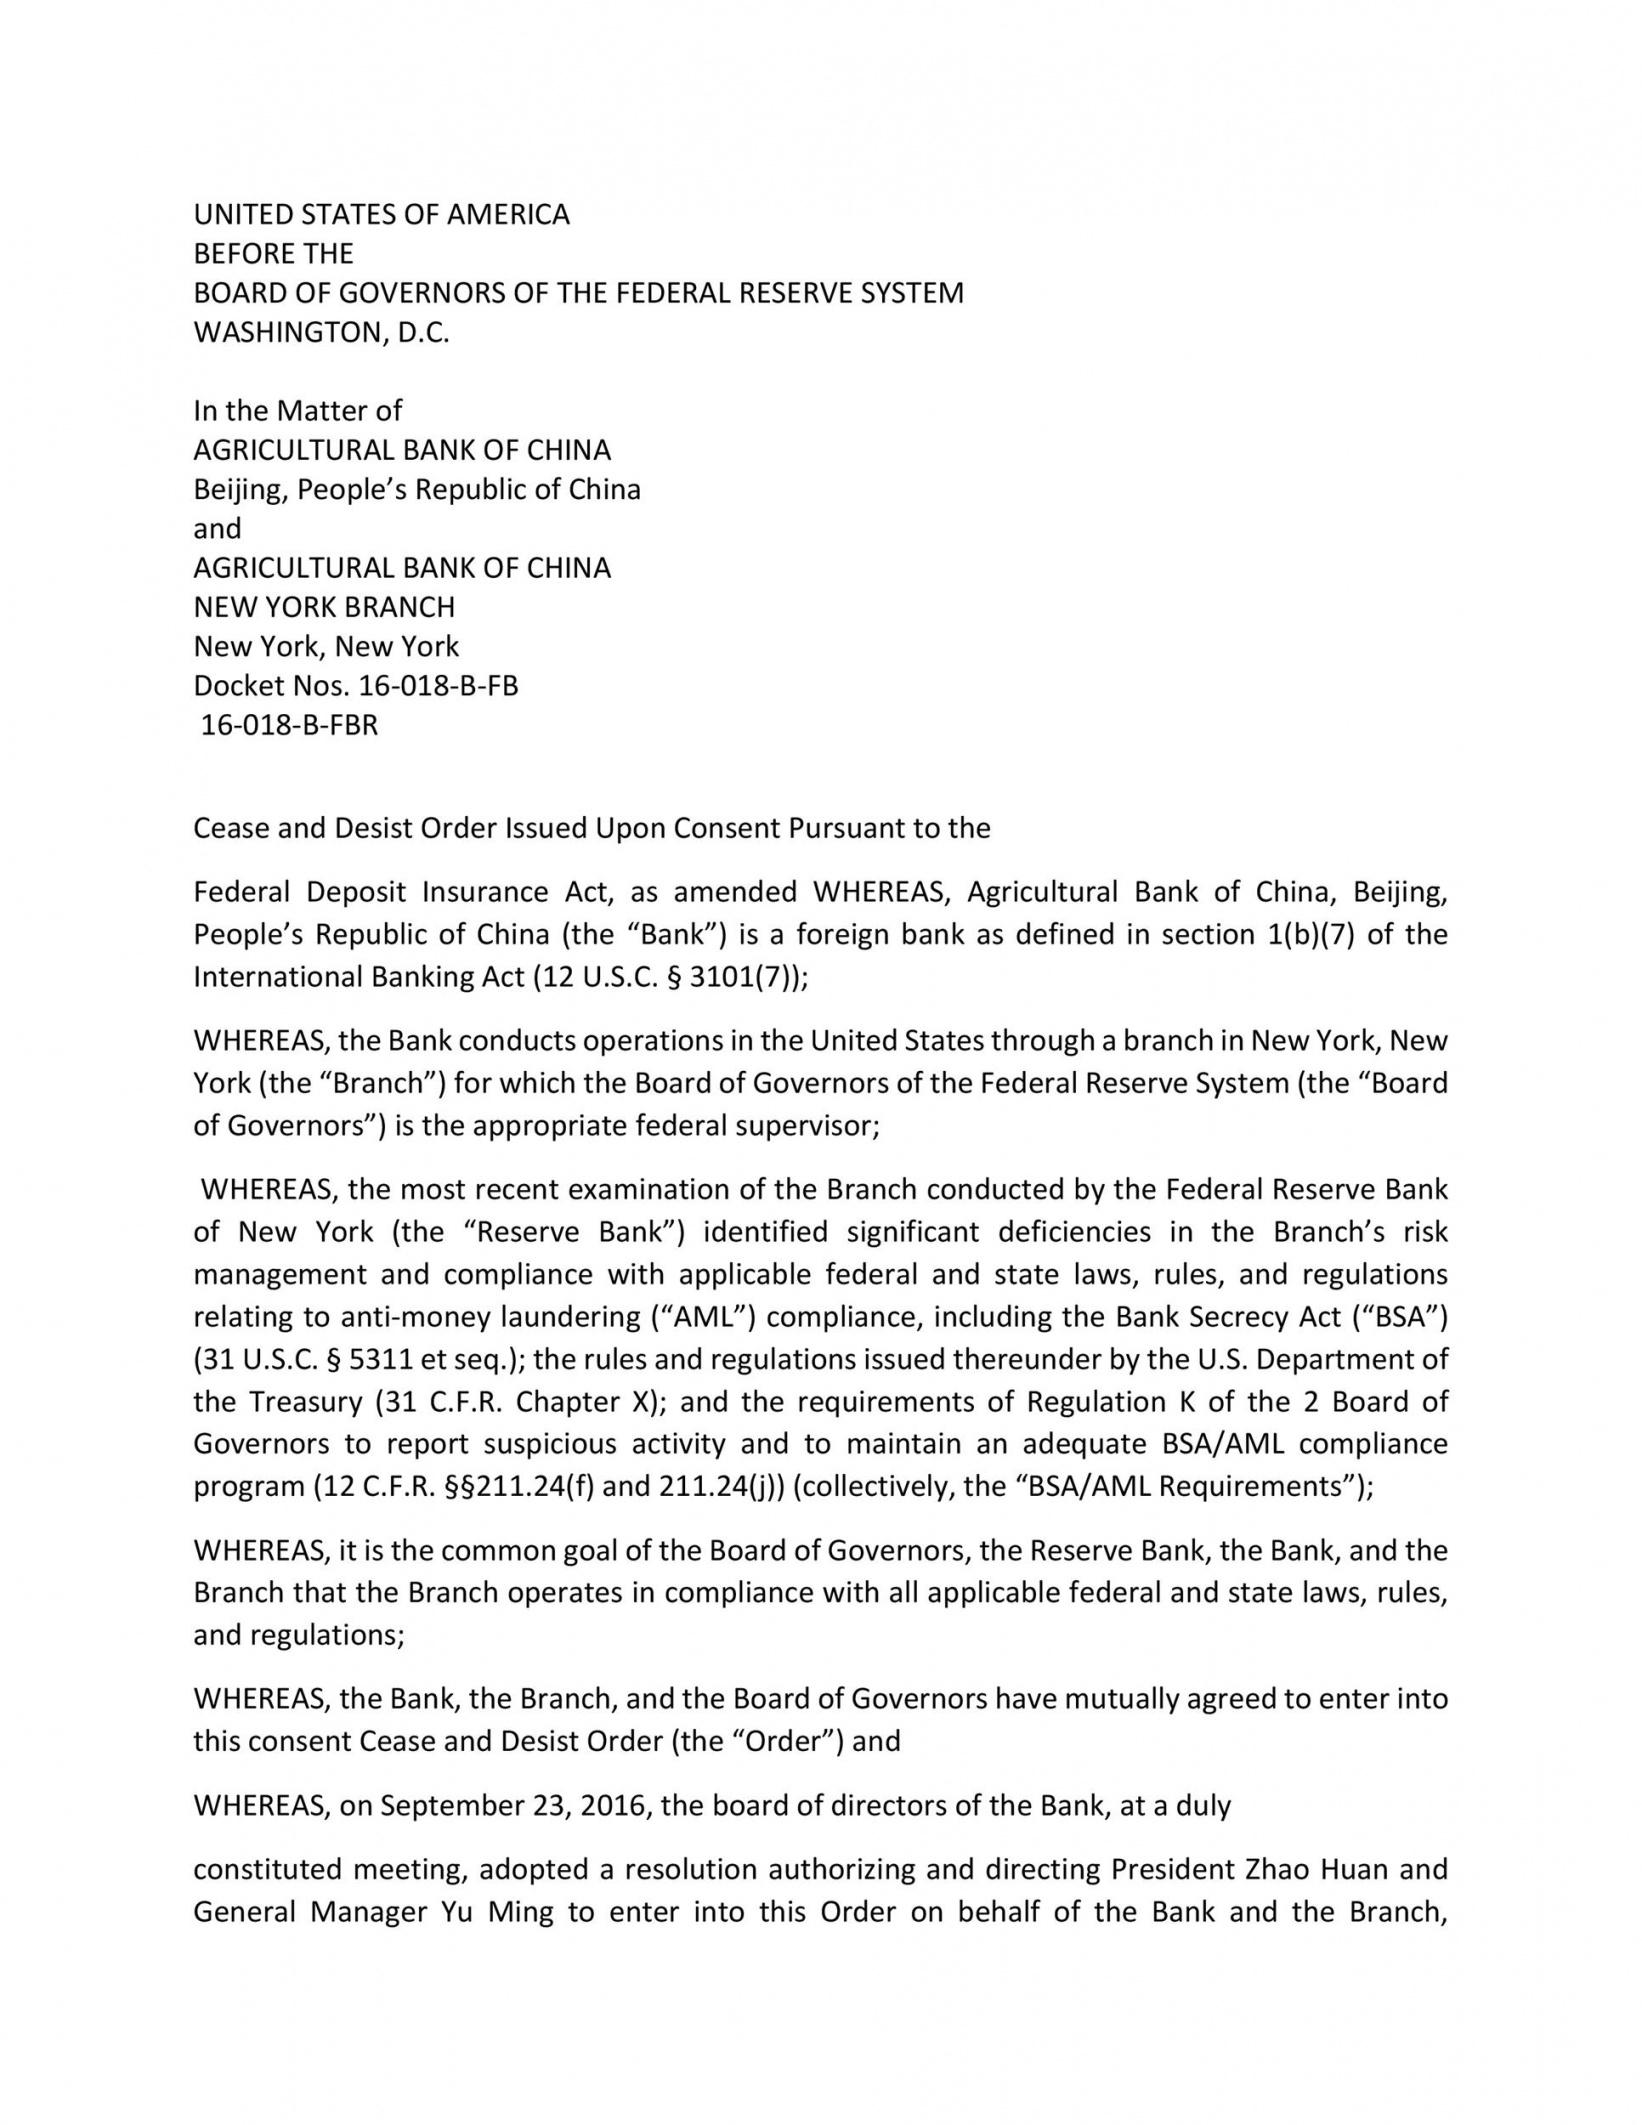 30 cease and desist letter templates free  templatelab general cease and desist letter template doc